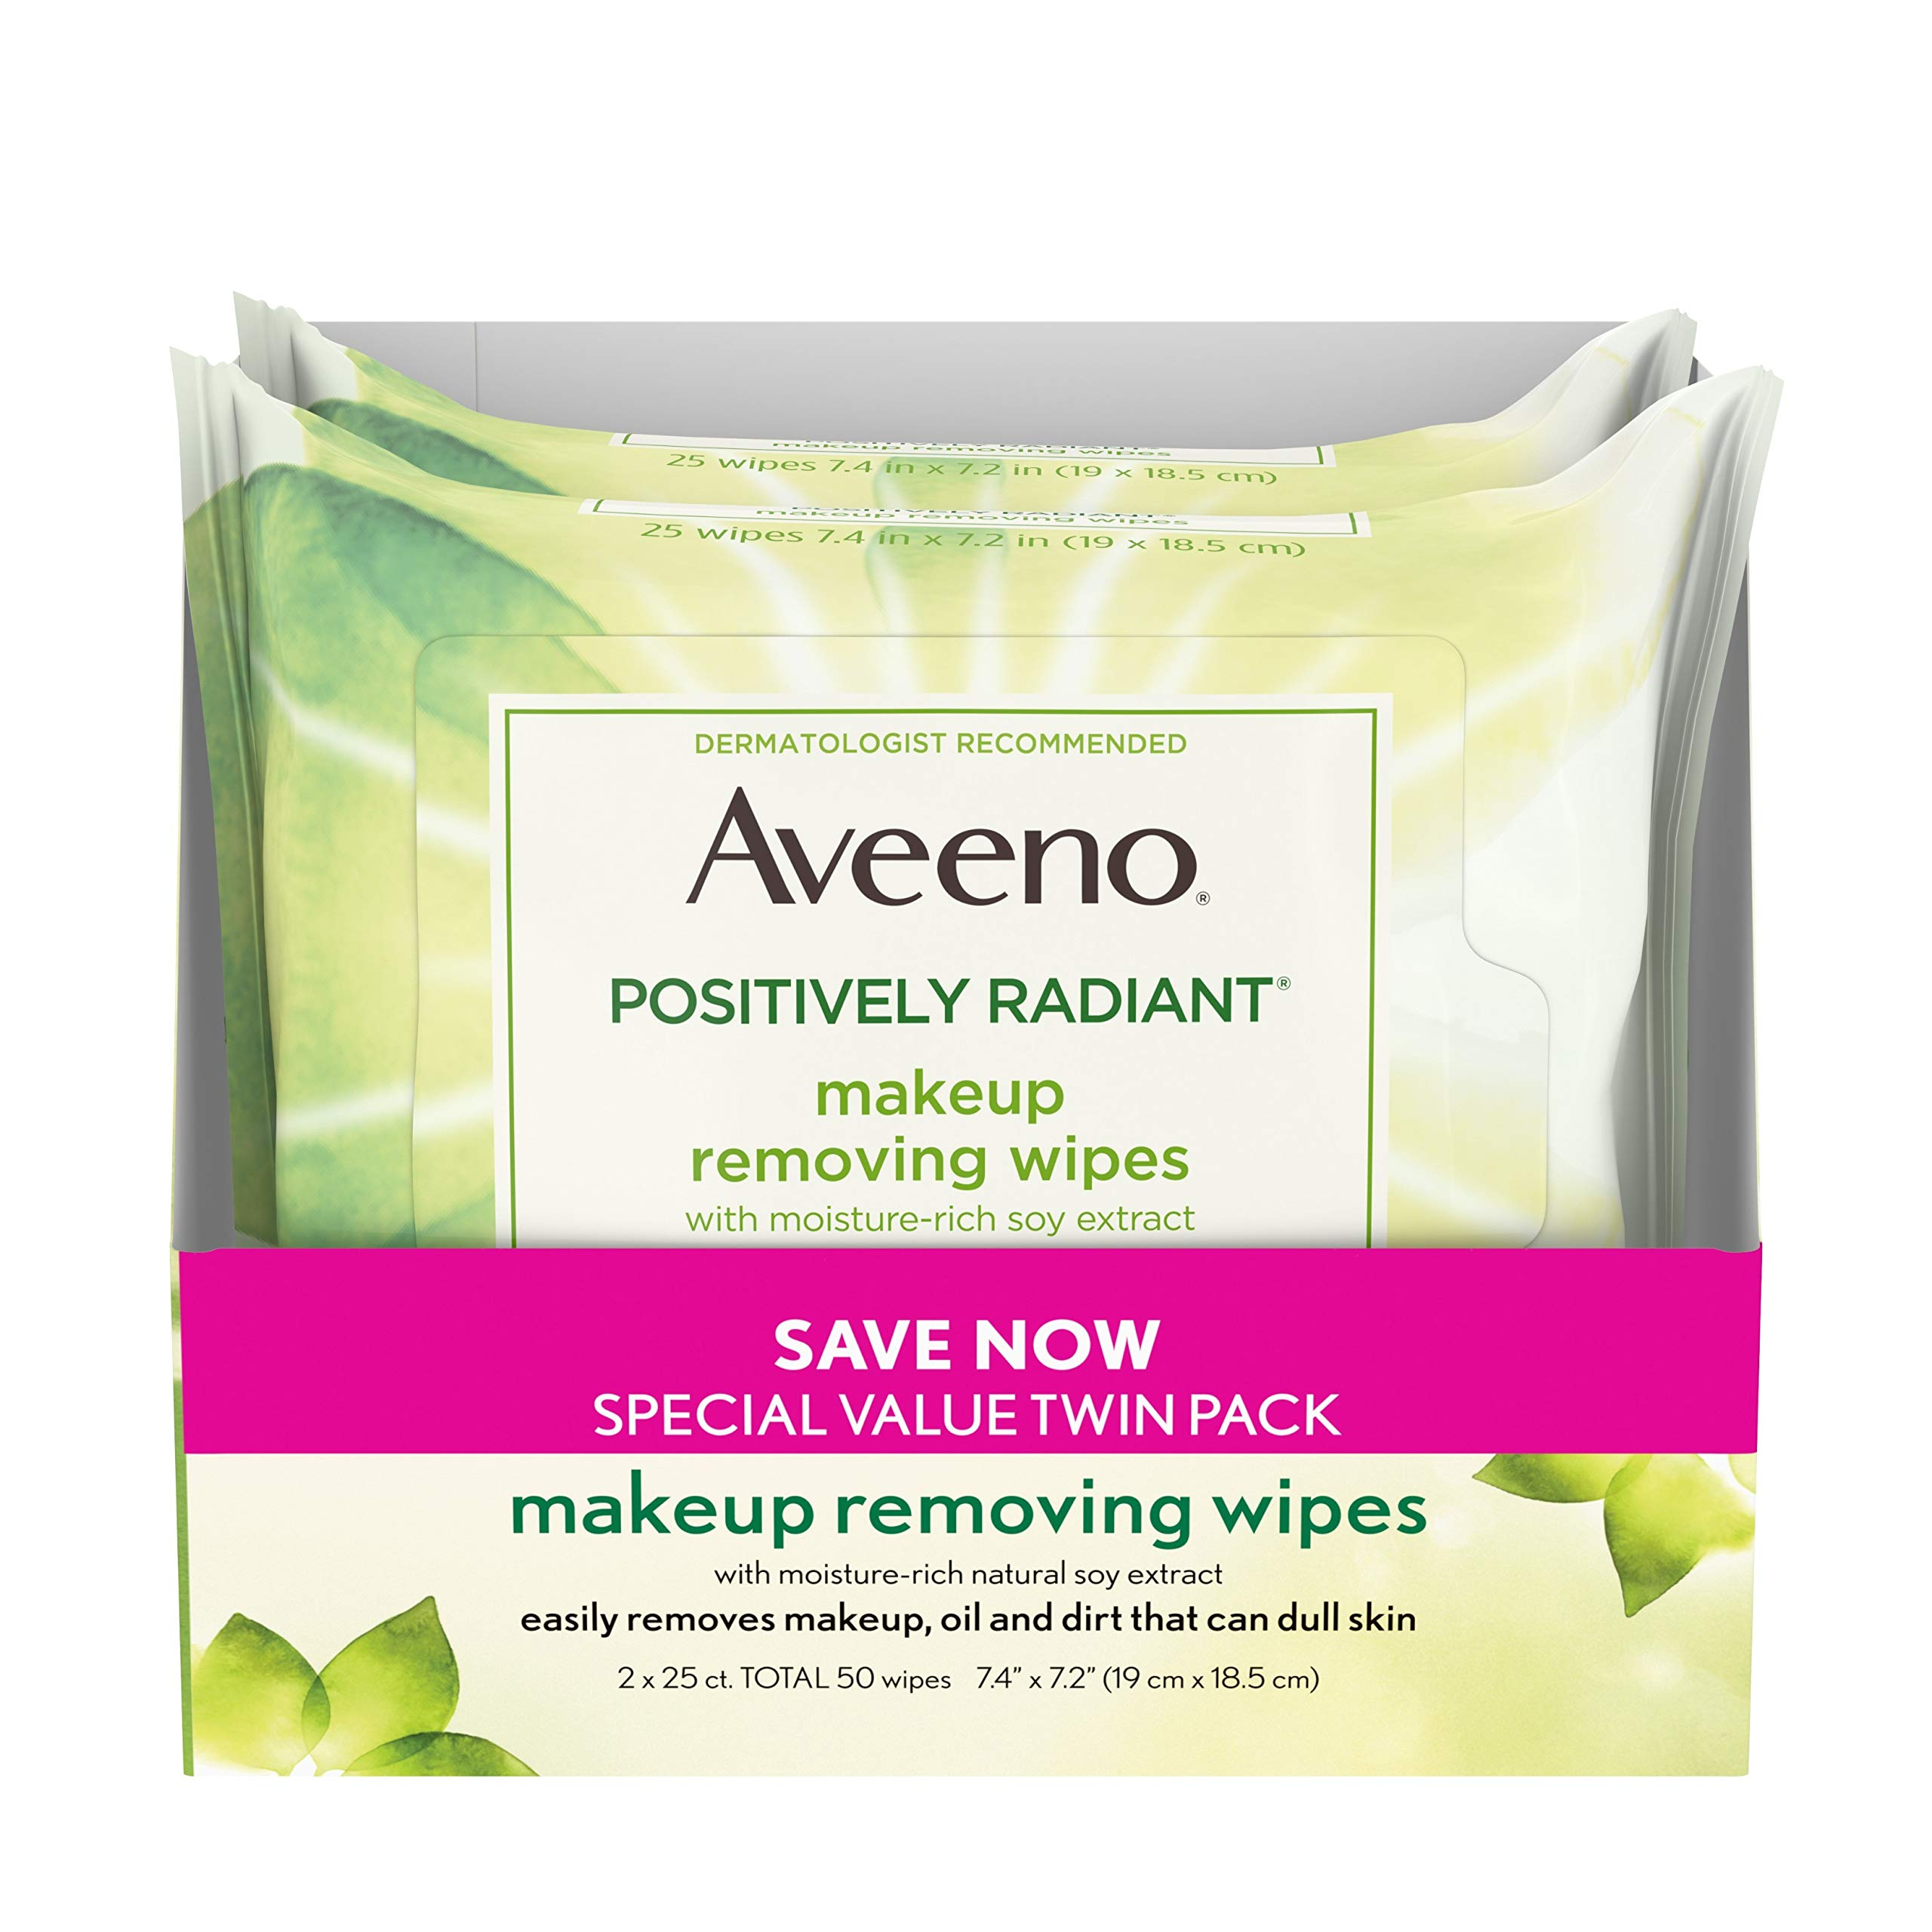 Aveeno Positively Radiant Oil-Free Makeup Removing Wipes to Help Even Skin Tone and Texture with Moisture-Rich Soy Extract, 25 ct., Twin pack by Aveeno